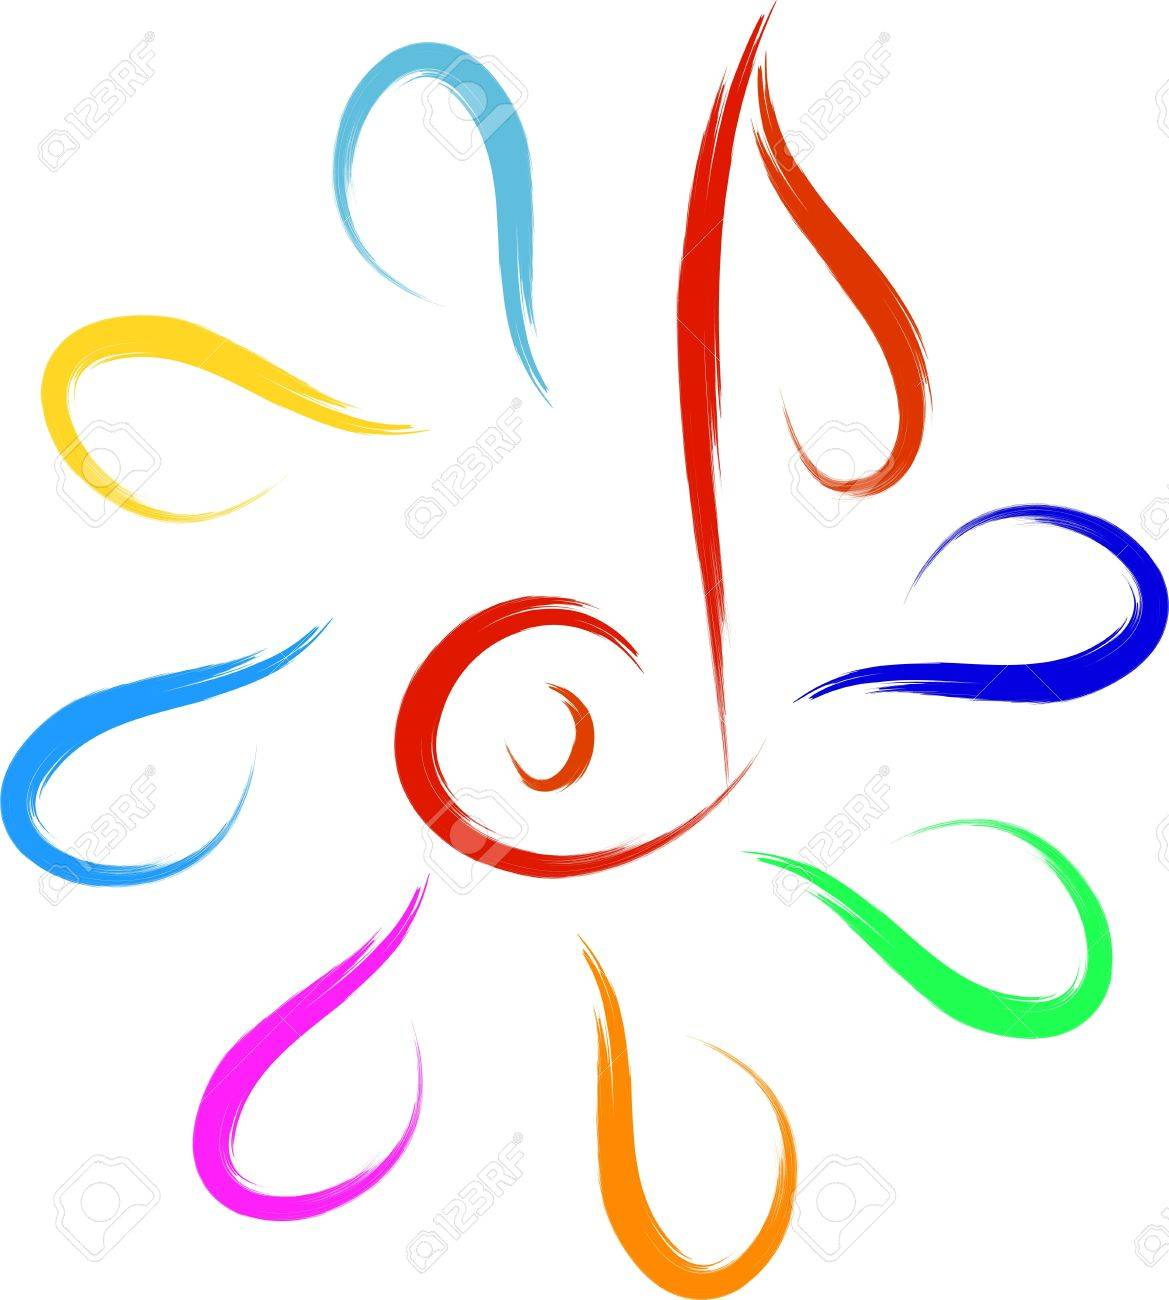 music symbol abstract sketch Stock Vector - 16850607